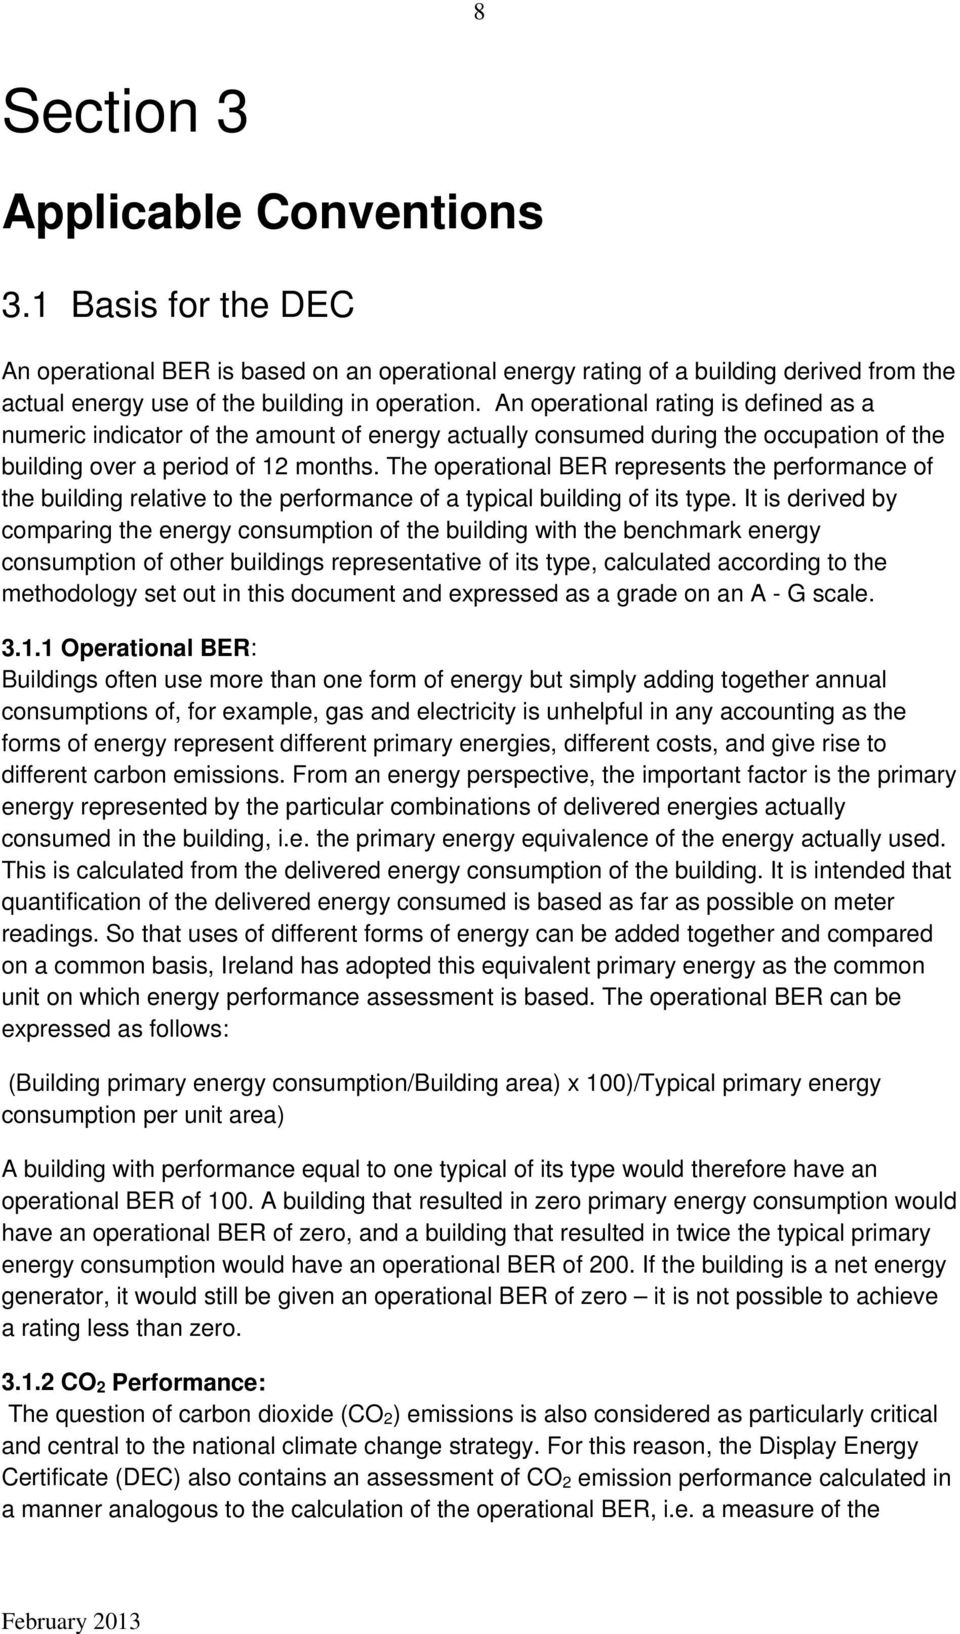 The operational BER represents the performance of the building relative to the performance of a typical building of its type.